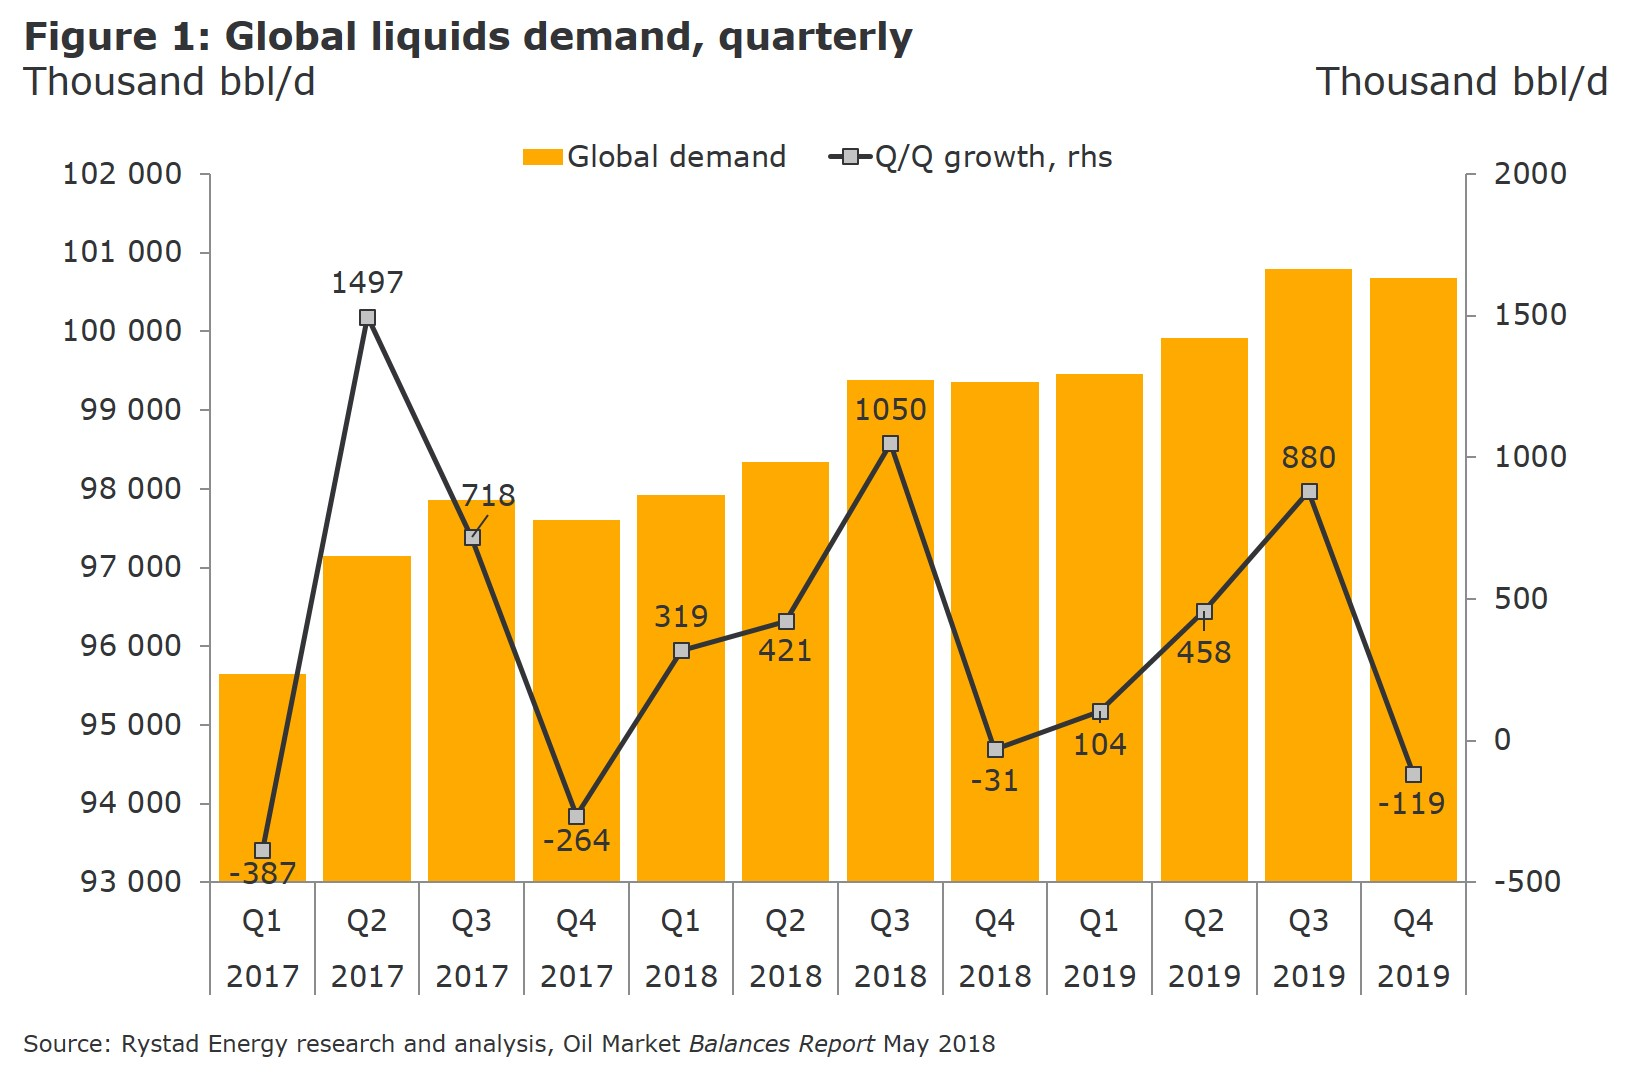 Figure 1: A chart showing global liquids demand, quarterly in thousand bbl/d from 2017 to 2019. Source: Rystard Energy Oil Market